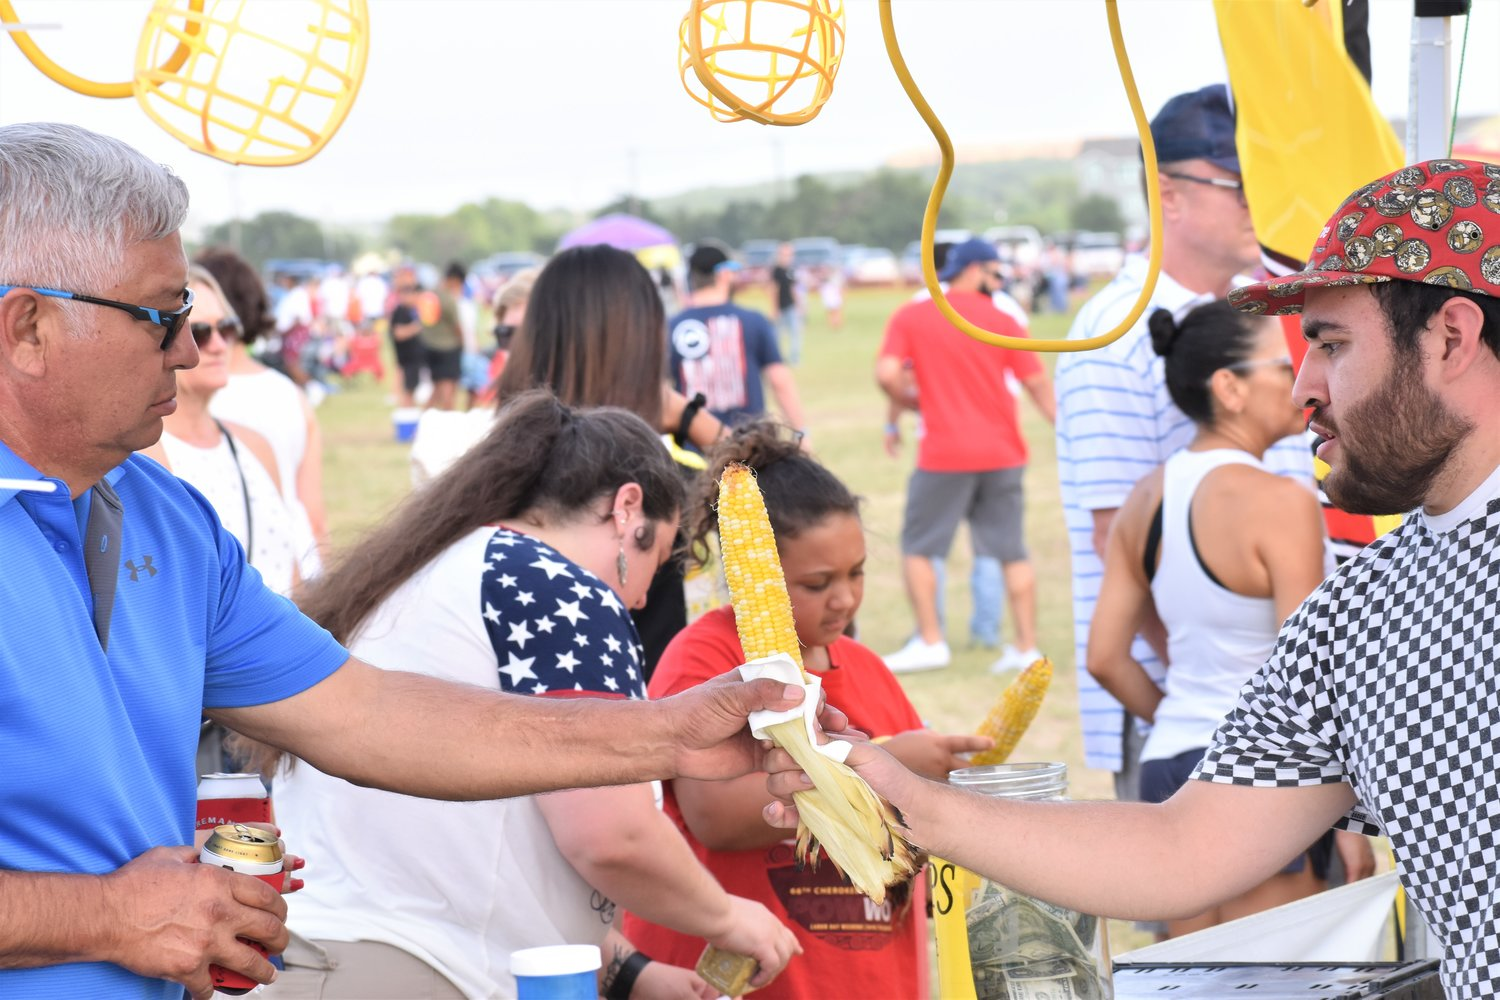 James Ramirez, of the RJ Roasting booth, serves roasted corn to an attendee of Liberty Fest in Leander on Thursday.